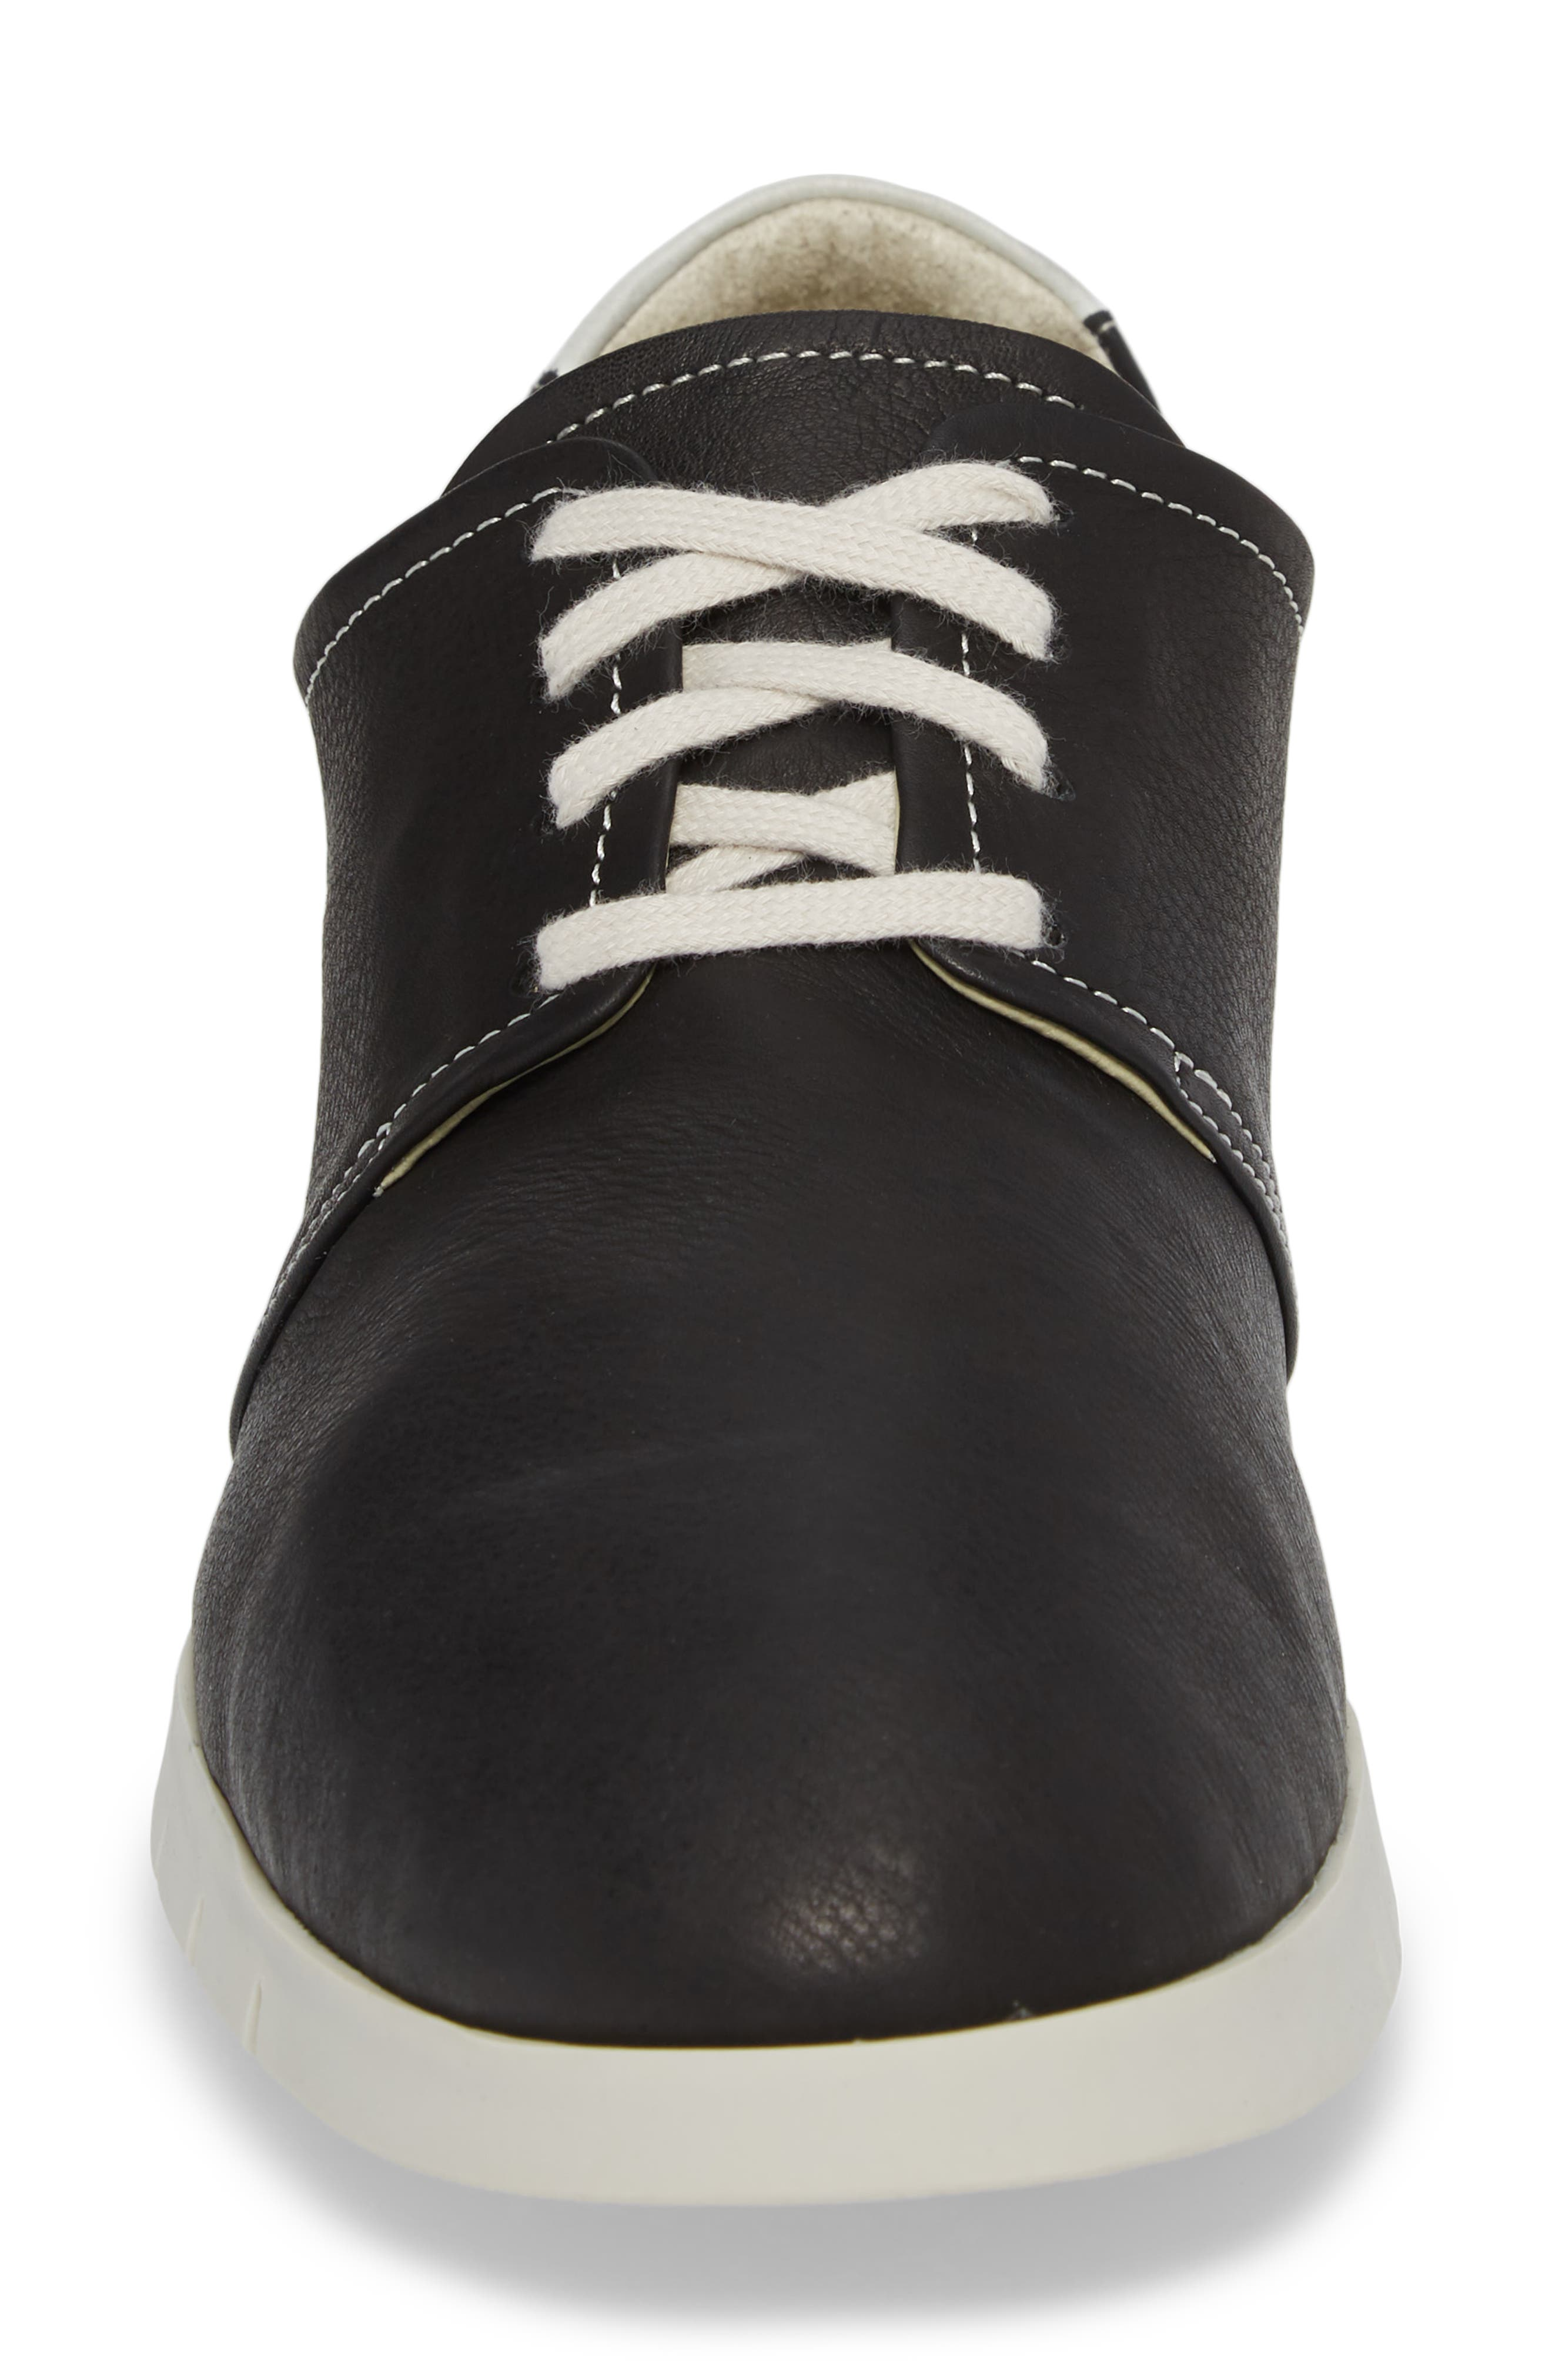 Cap Low Top Sneaker,                             Alternate thumbnail 4, color,                             BLACK/ WHITE LEATHER